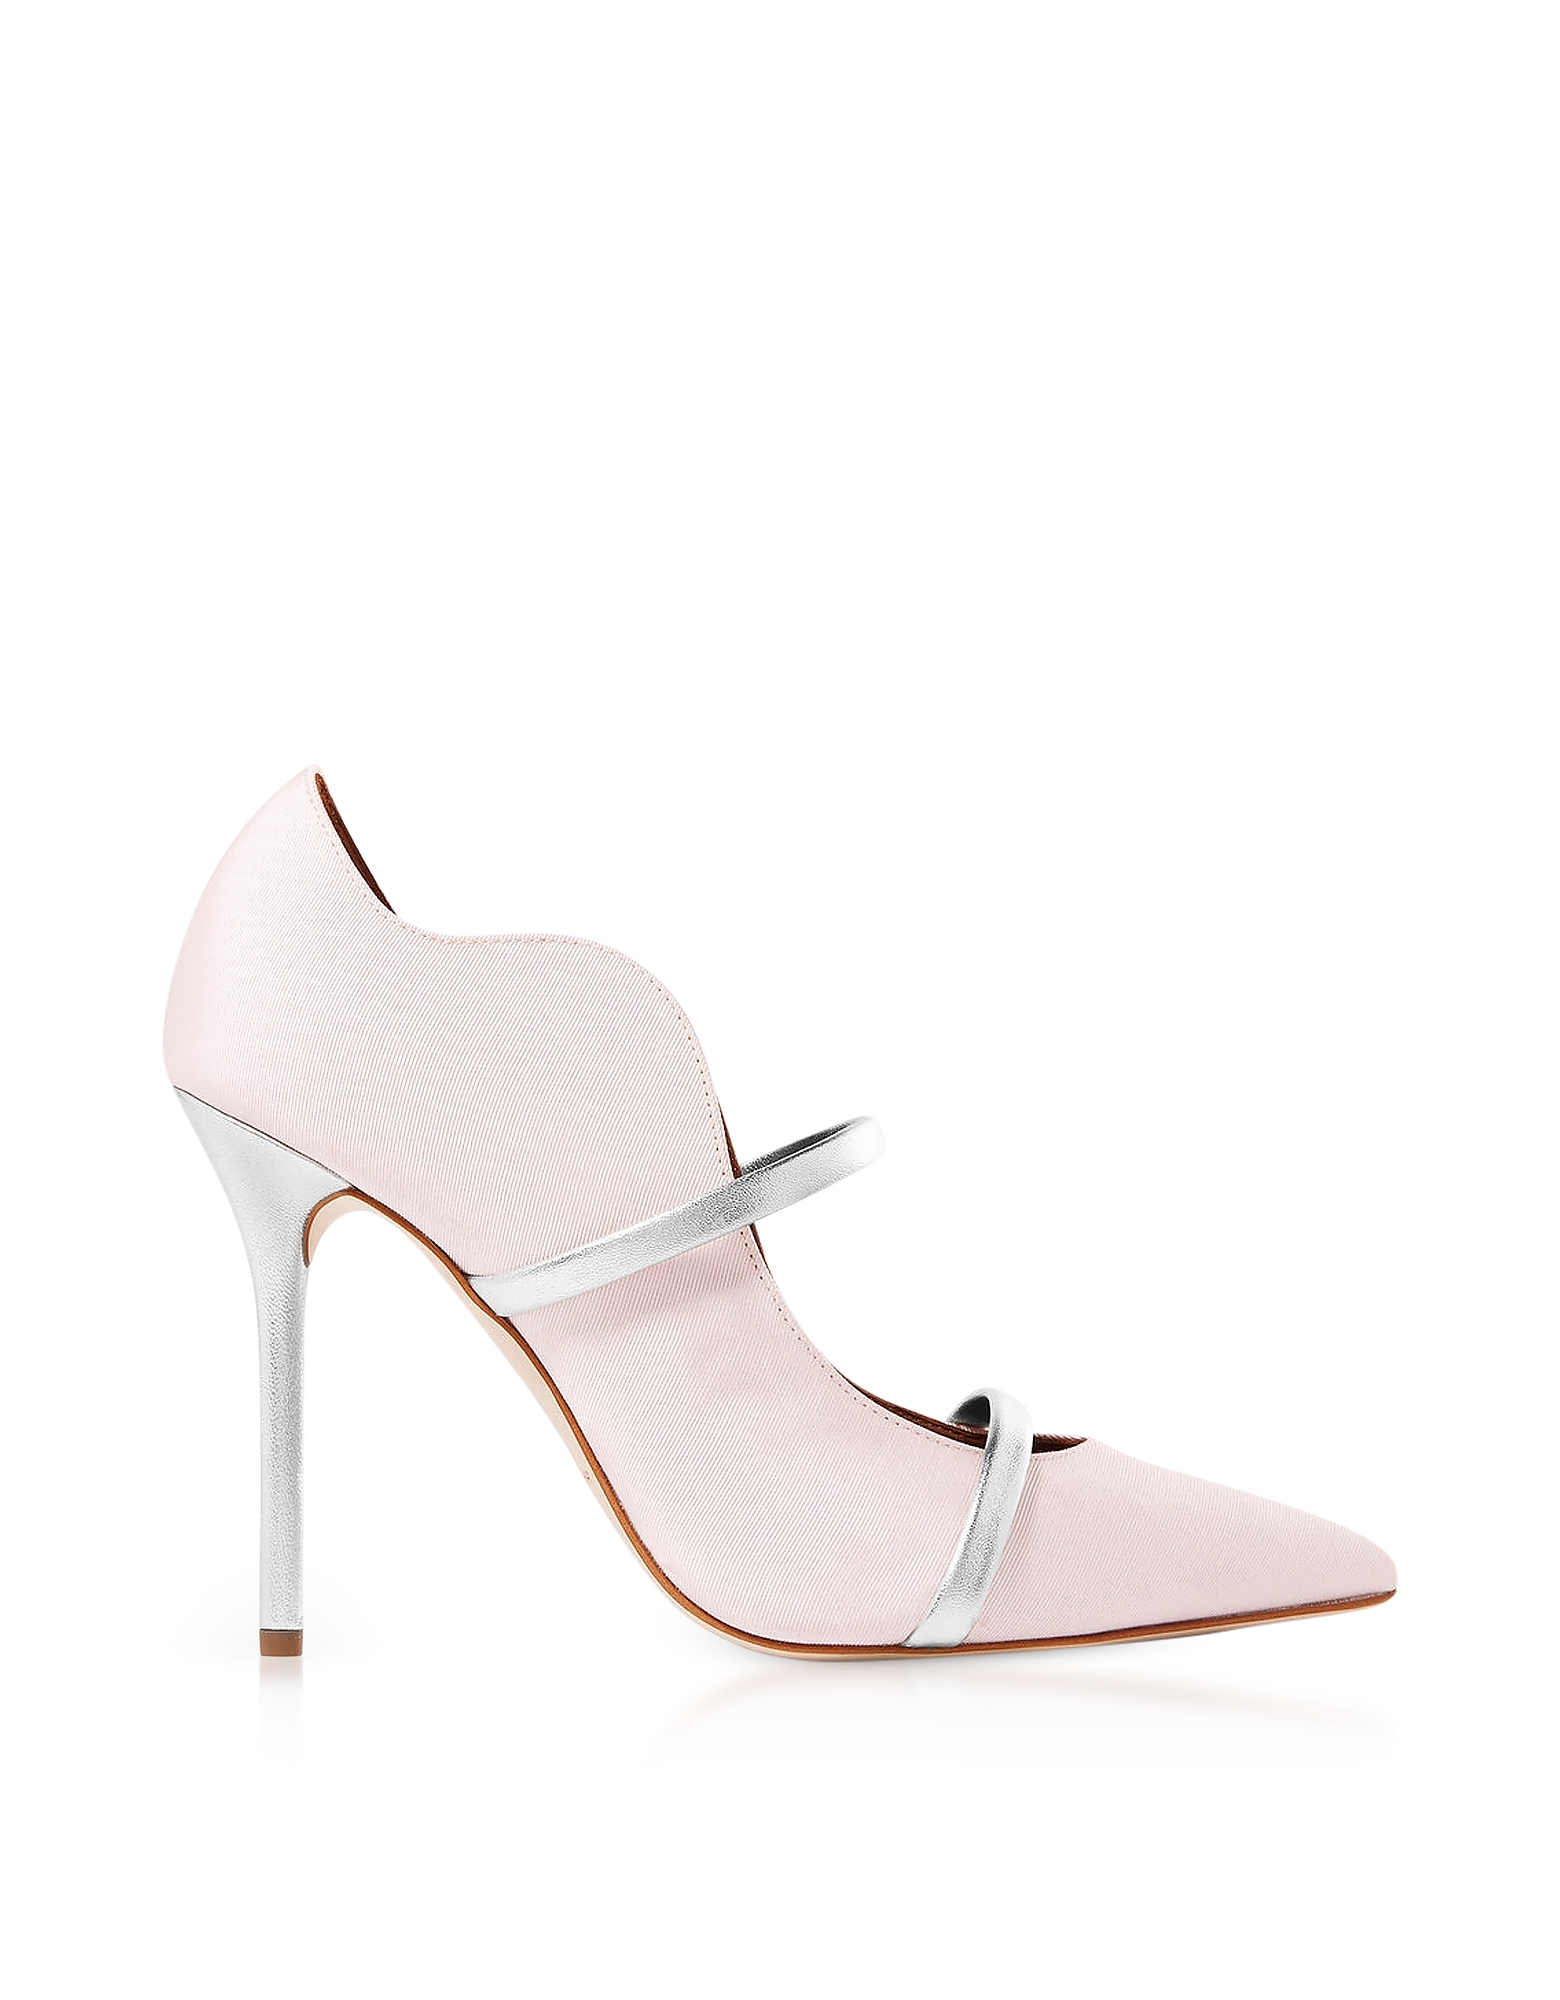 Malone Souliers Shoes, Maureen Rose Moire Fabric and Silver Metallic Nappa Leather High Heel Pumps